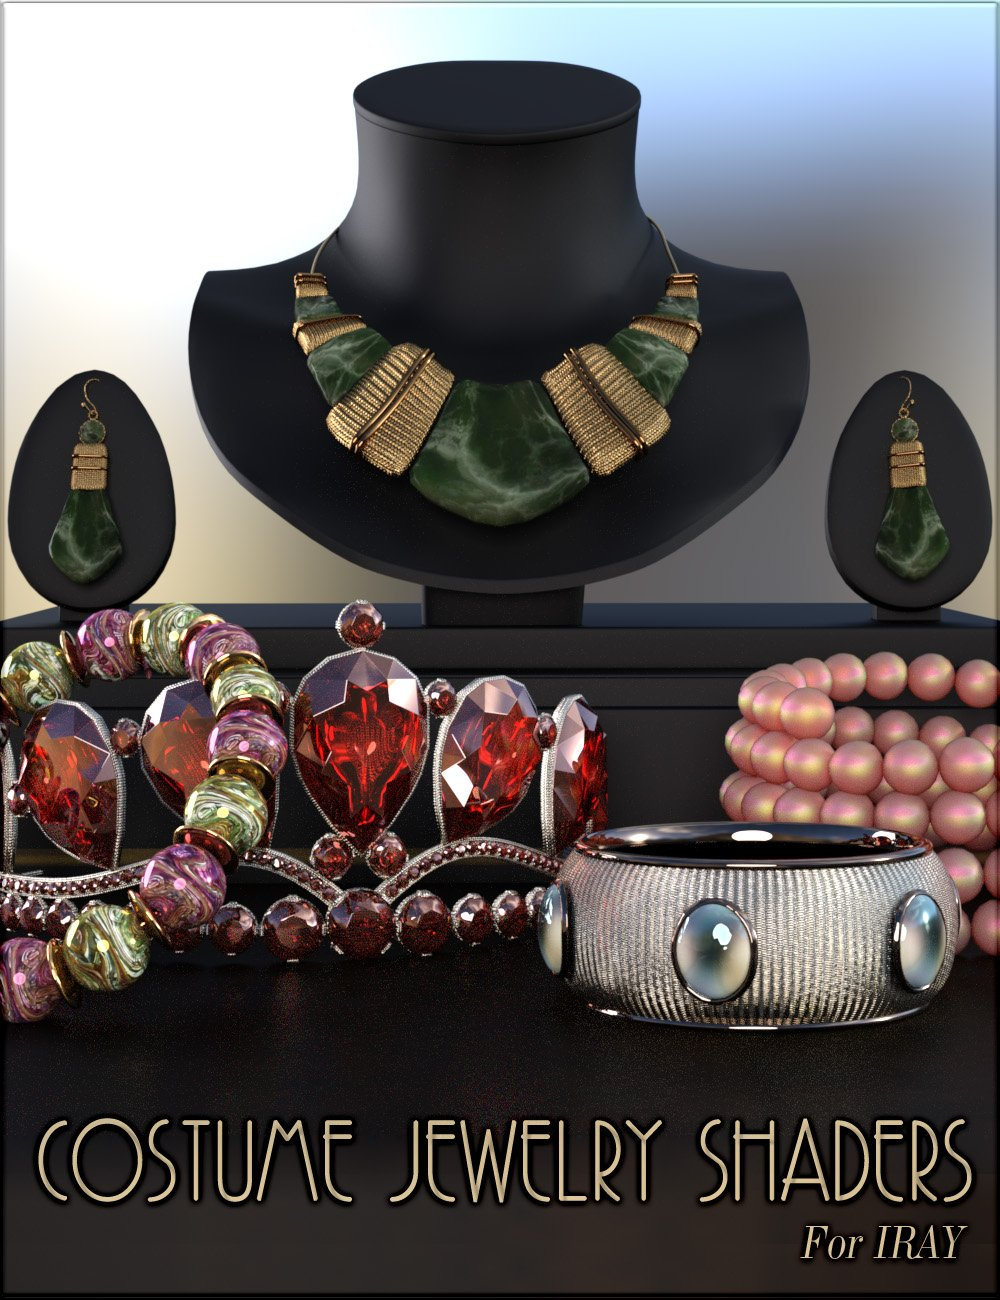 Costume Jewelry Shaders for Iray by: vyktohria, 3D Models by Daz 3D